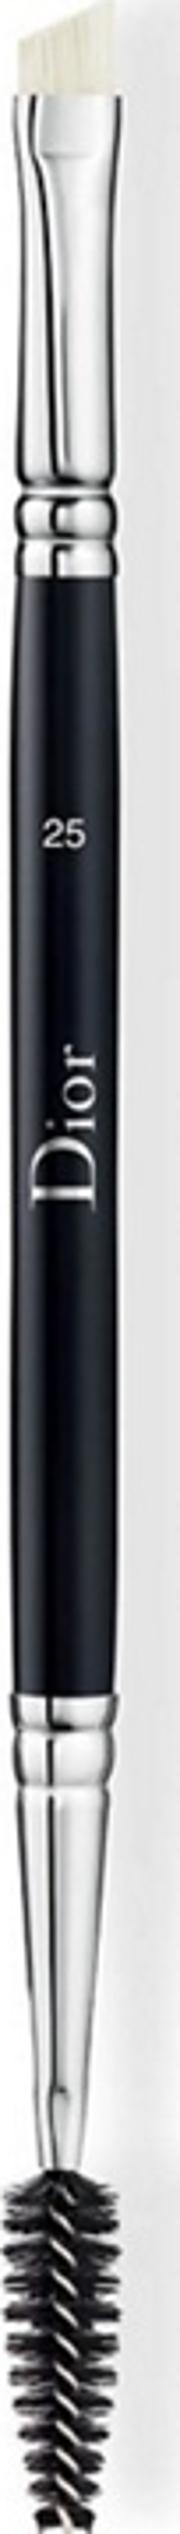 Dior Backstage Double Ended Brow Brush No. 25